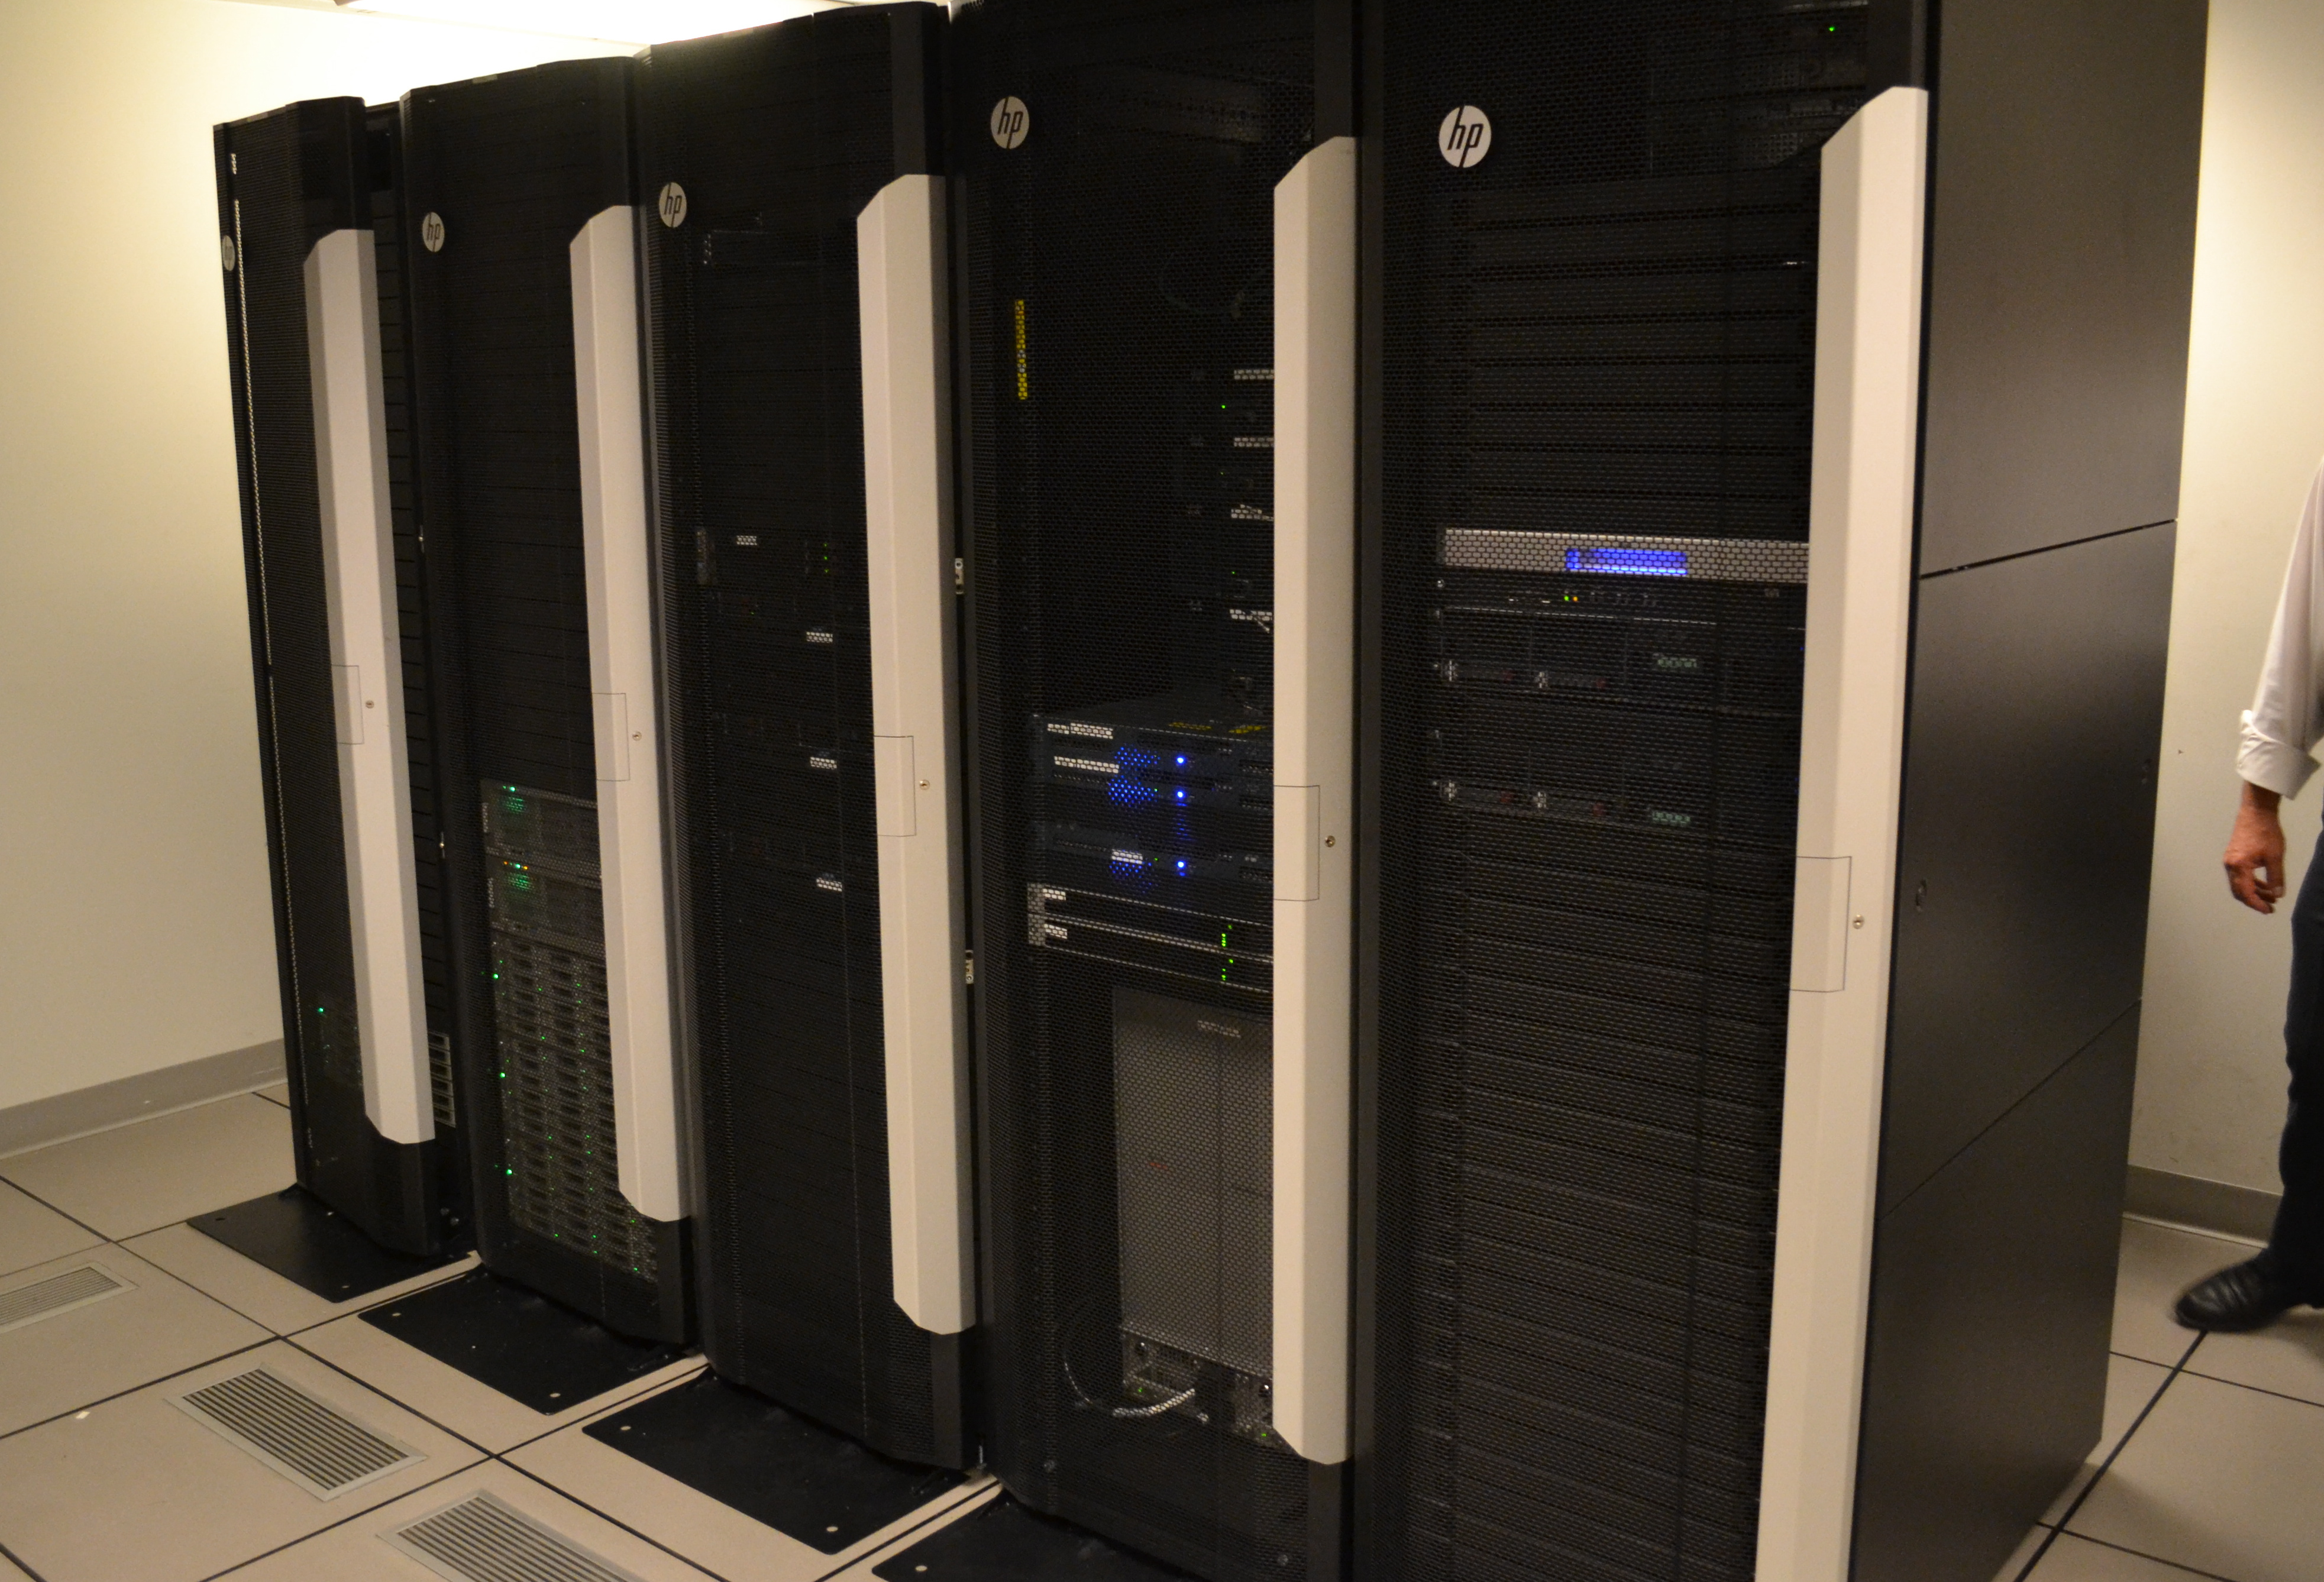 The New Payment Technology data center is capable of processing 50,000 transactions in less than a minute